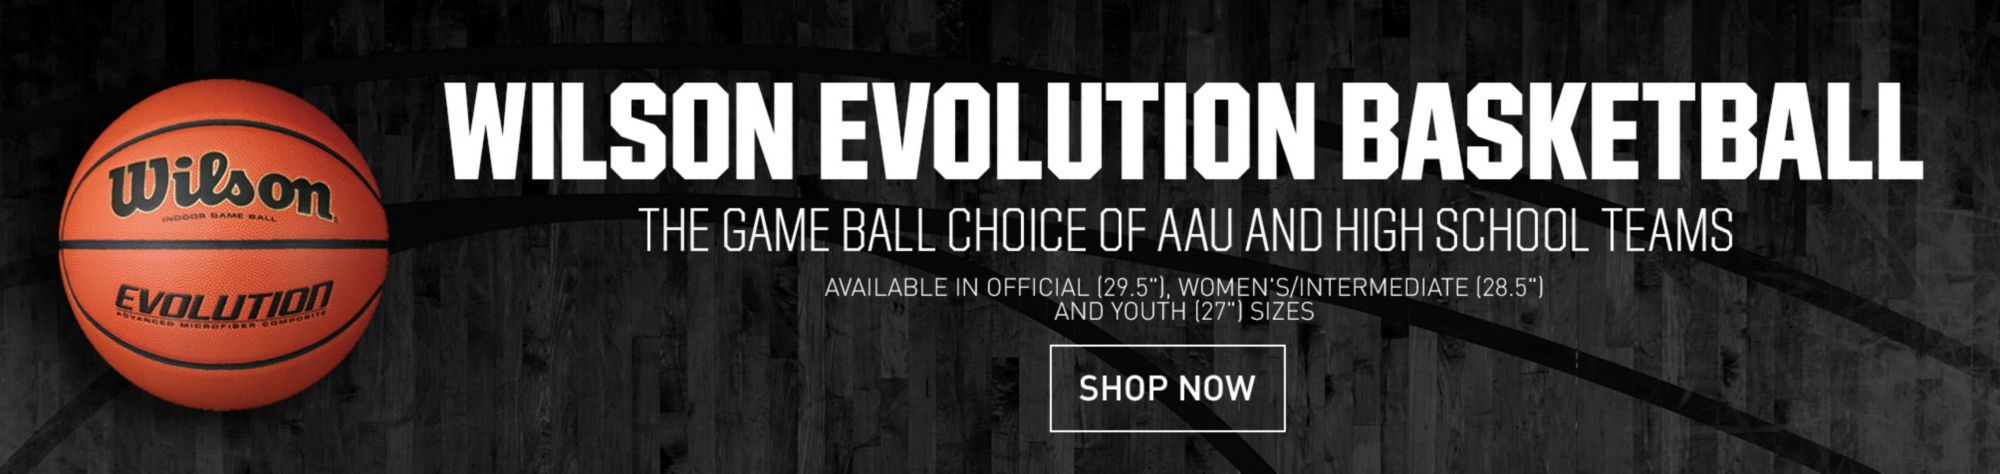 Game on closeouts sporting goods - Wilson Evolution Basketballs